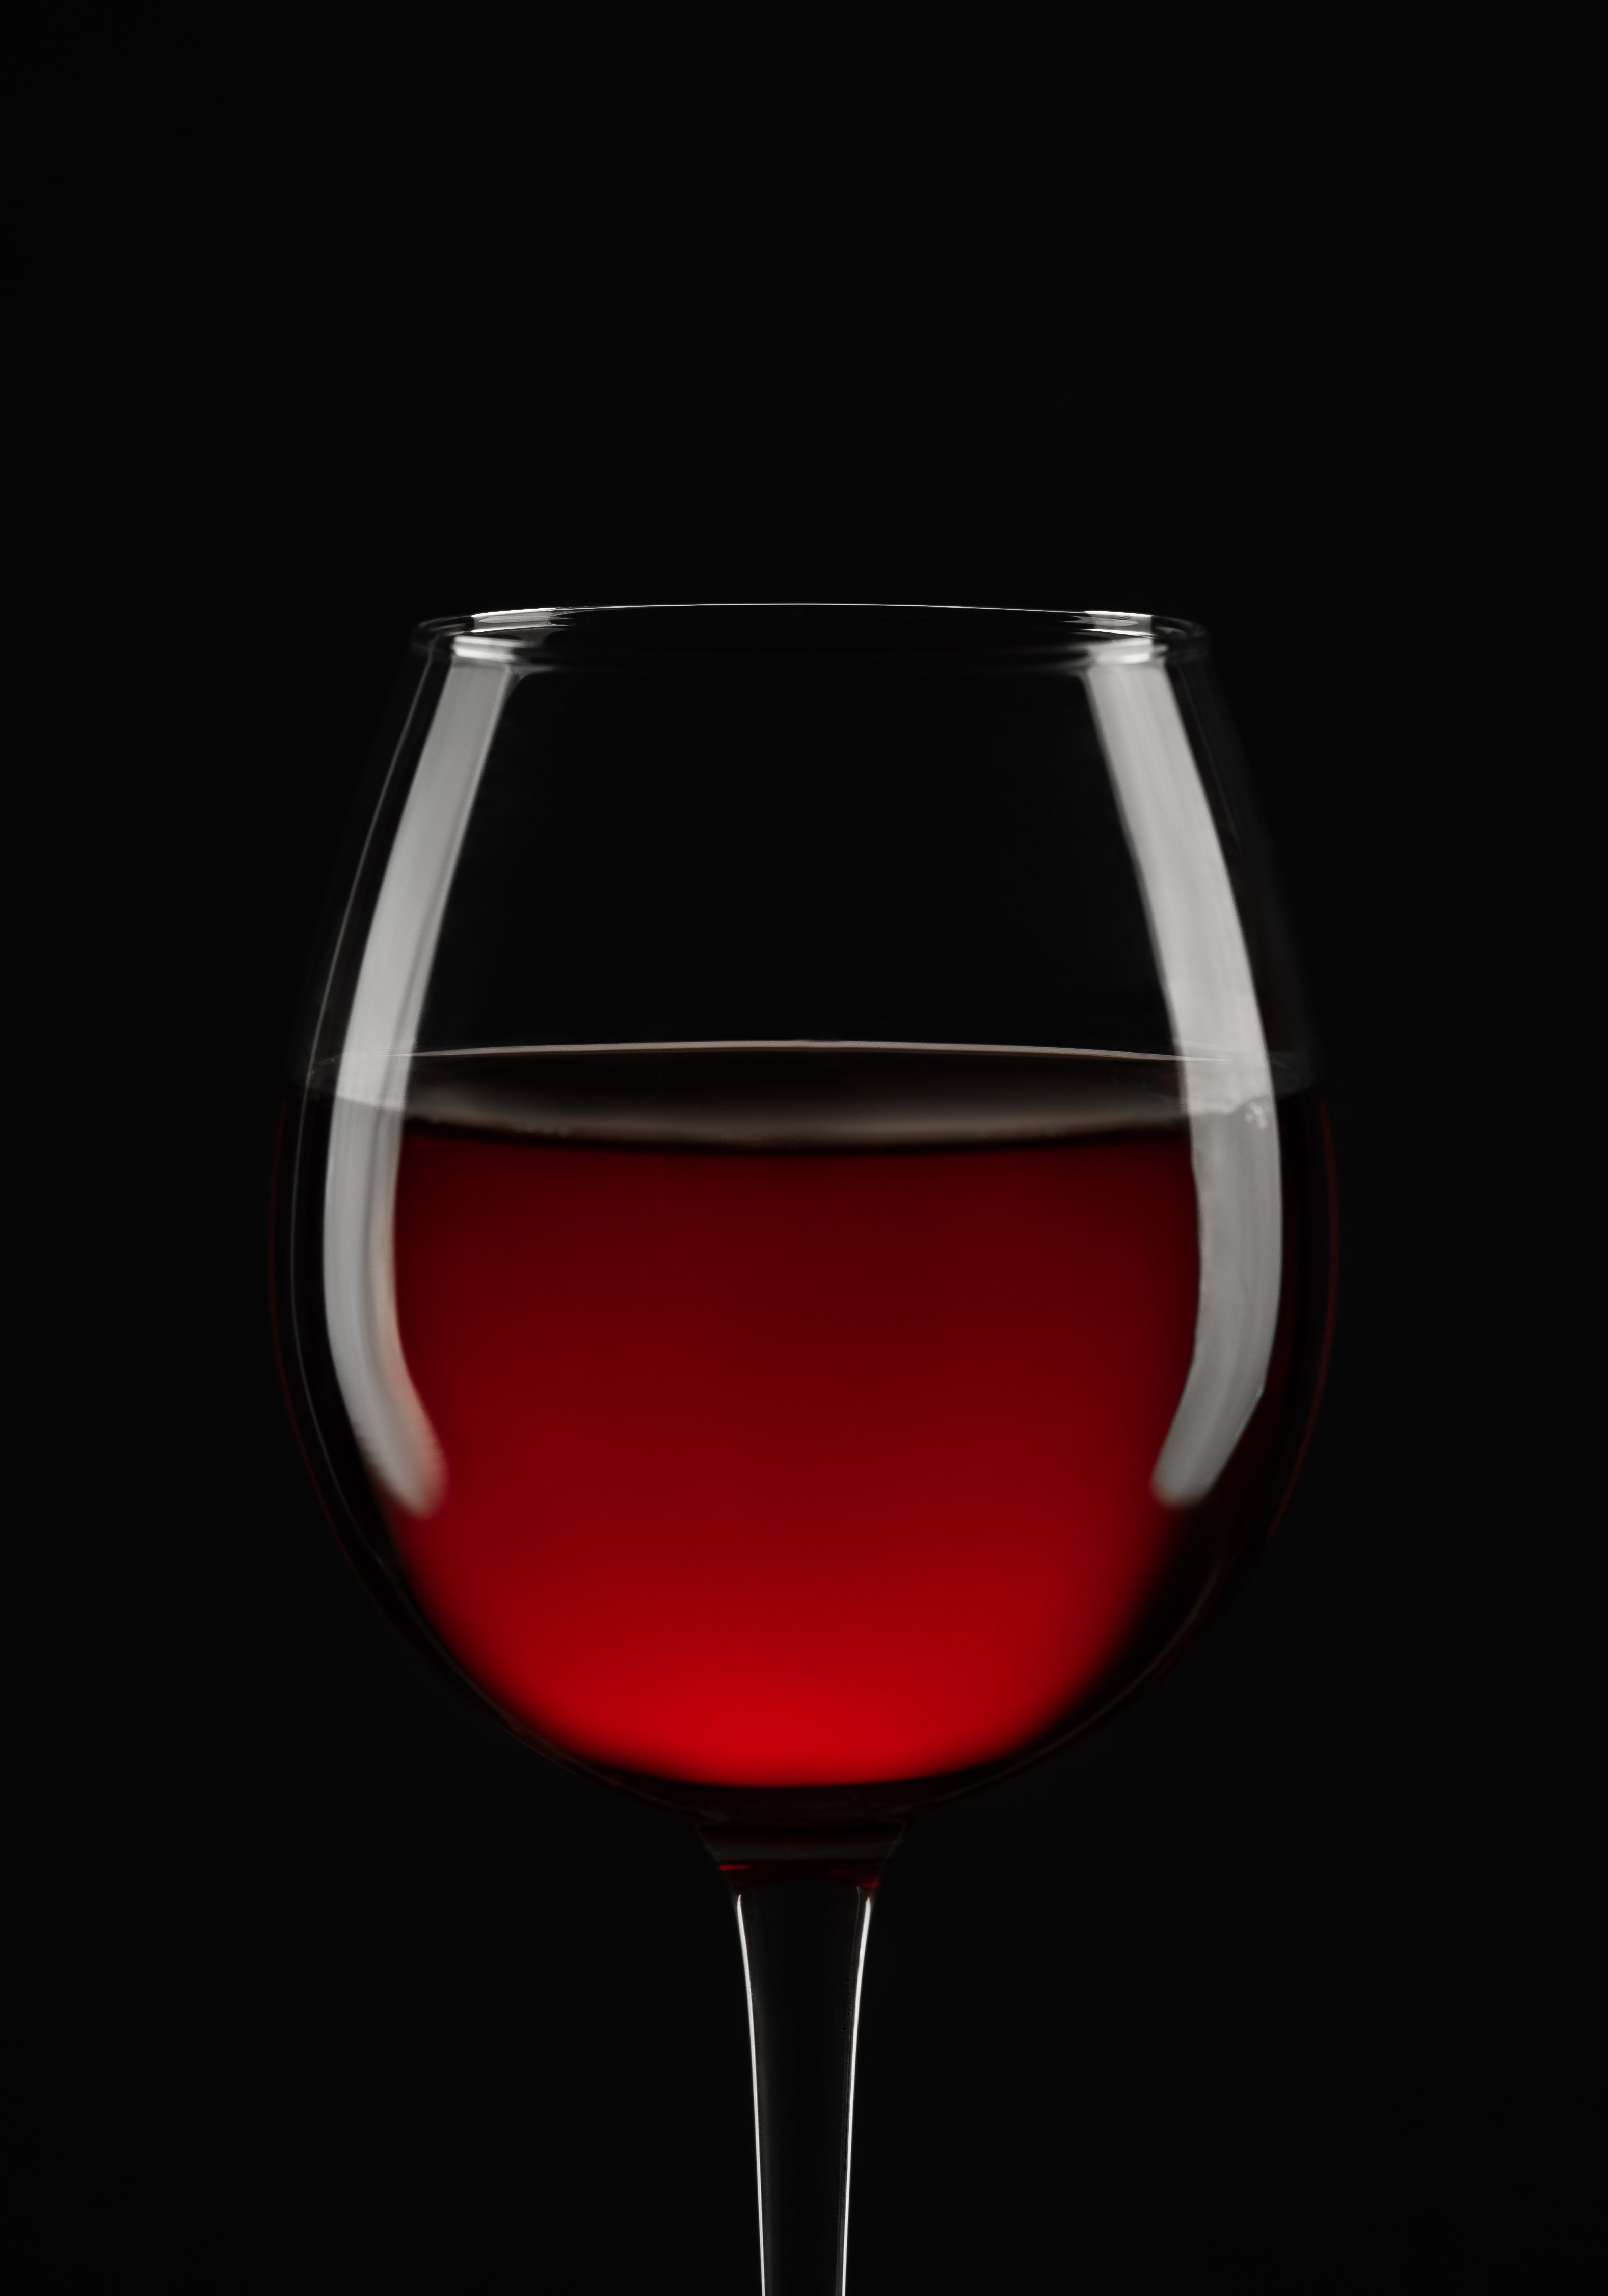 Wine Photography Red Wine In Glass Wine Photography Red Wine Architectural Photographers